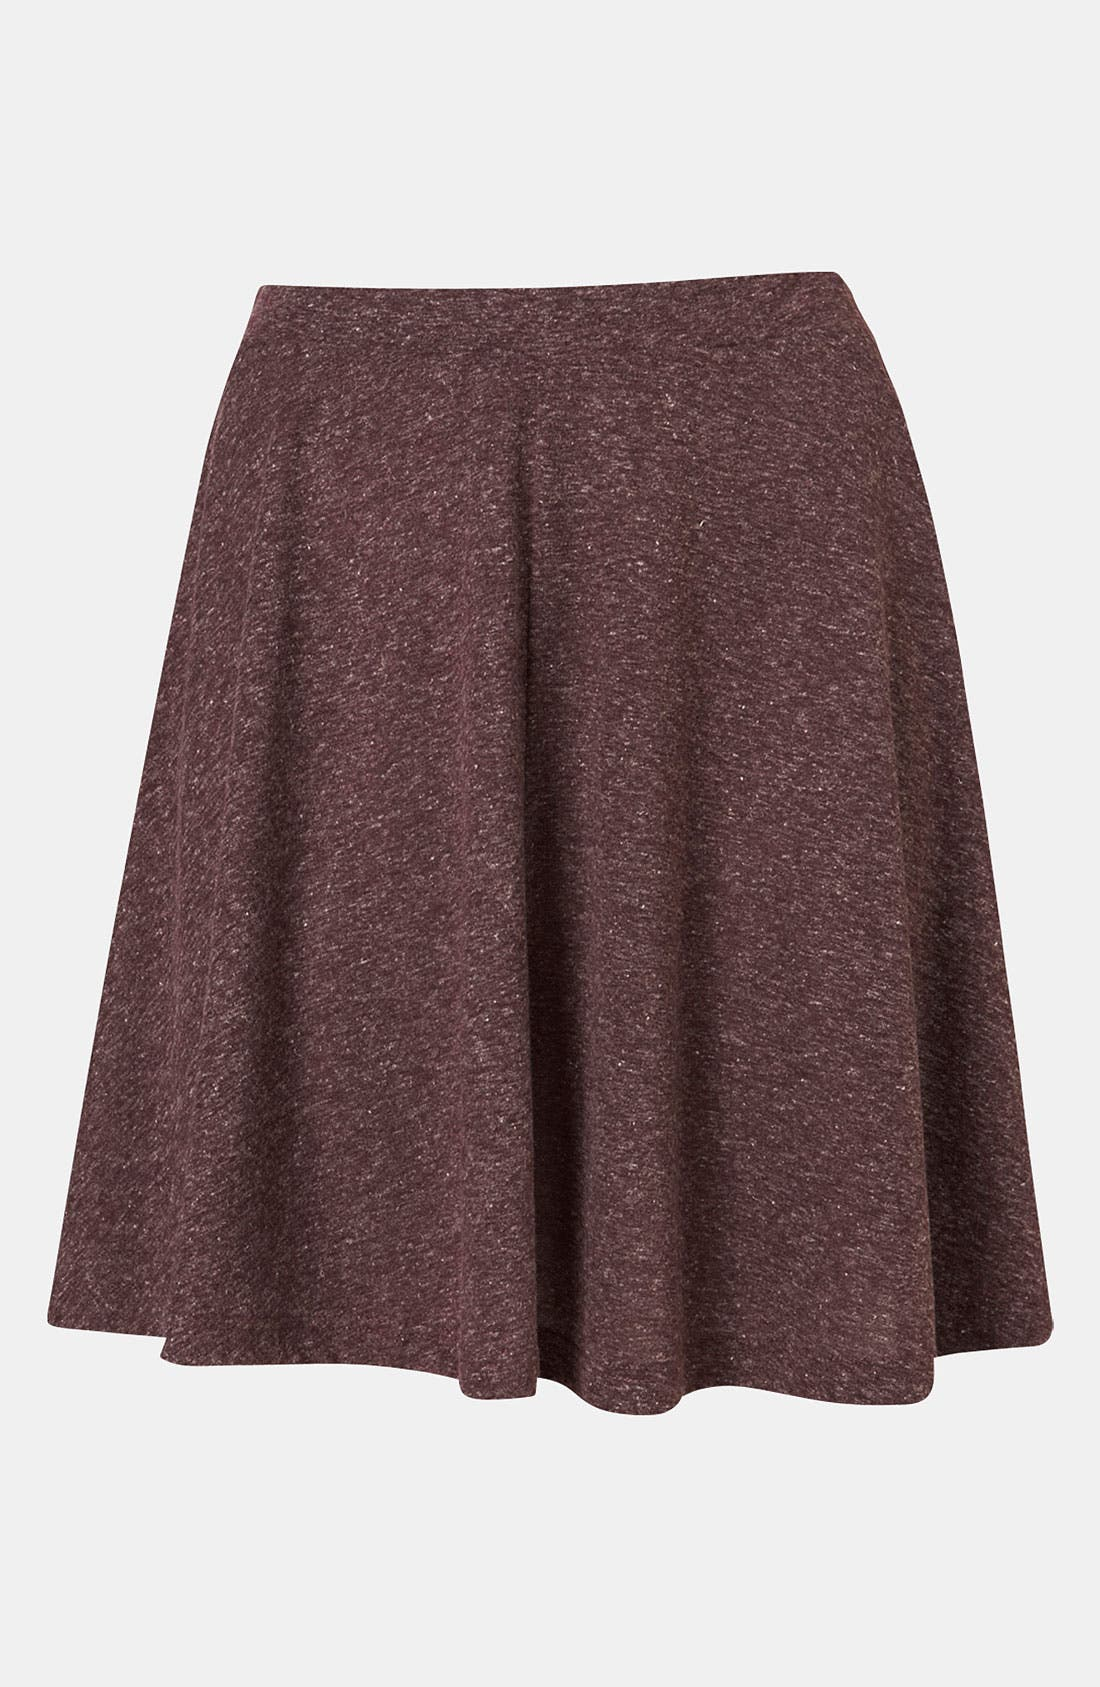 TOPSHOP, 'Andie' Skater Skirt, Main thumbnail 1, color, 602